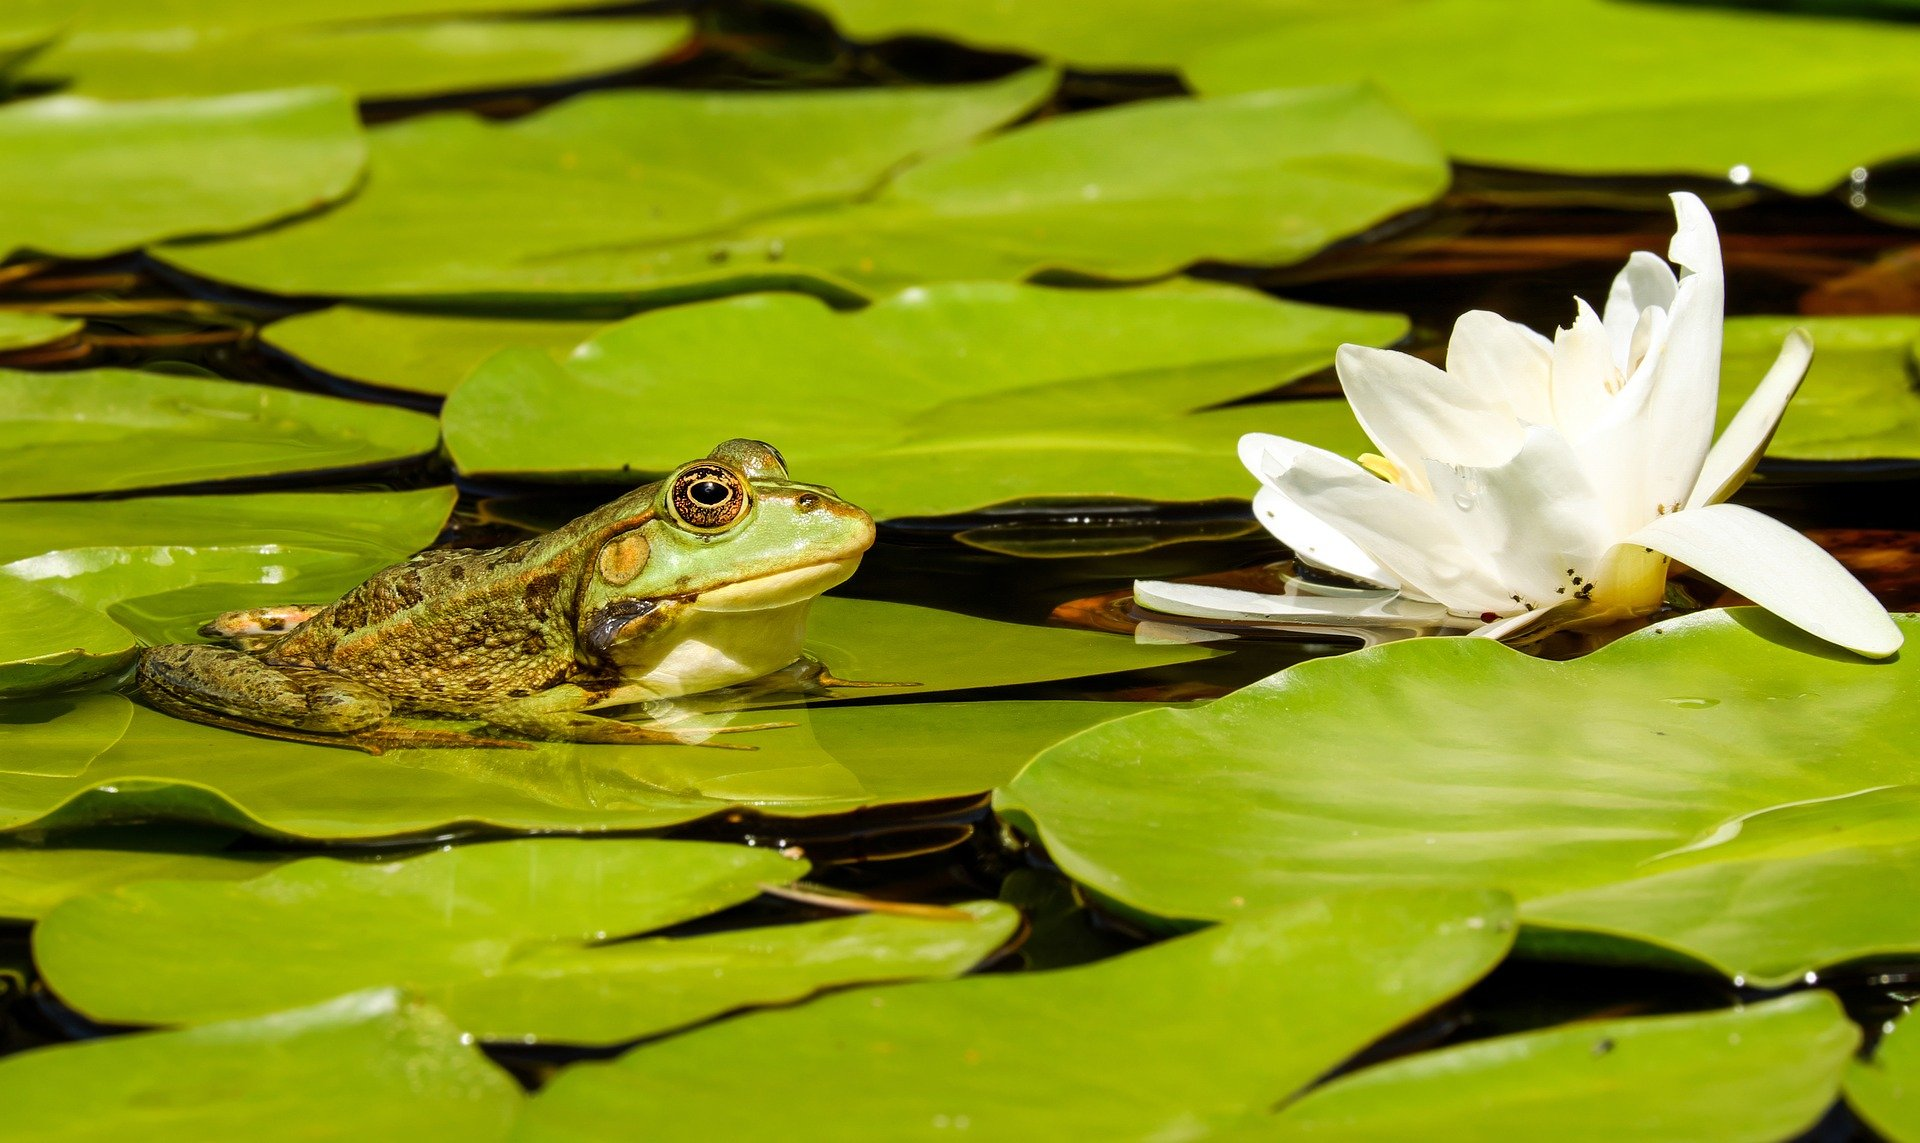 Your pond questions answered